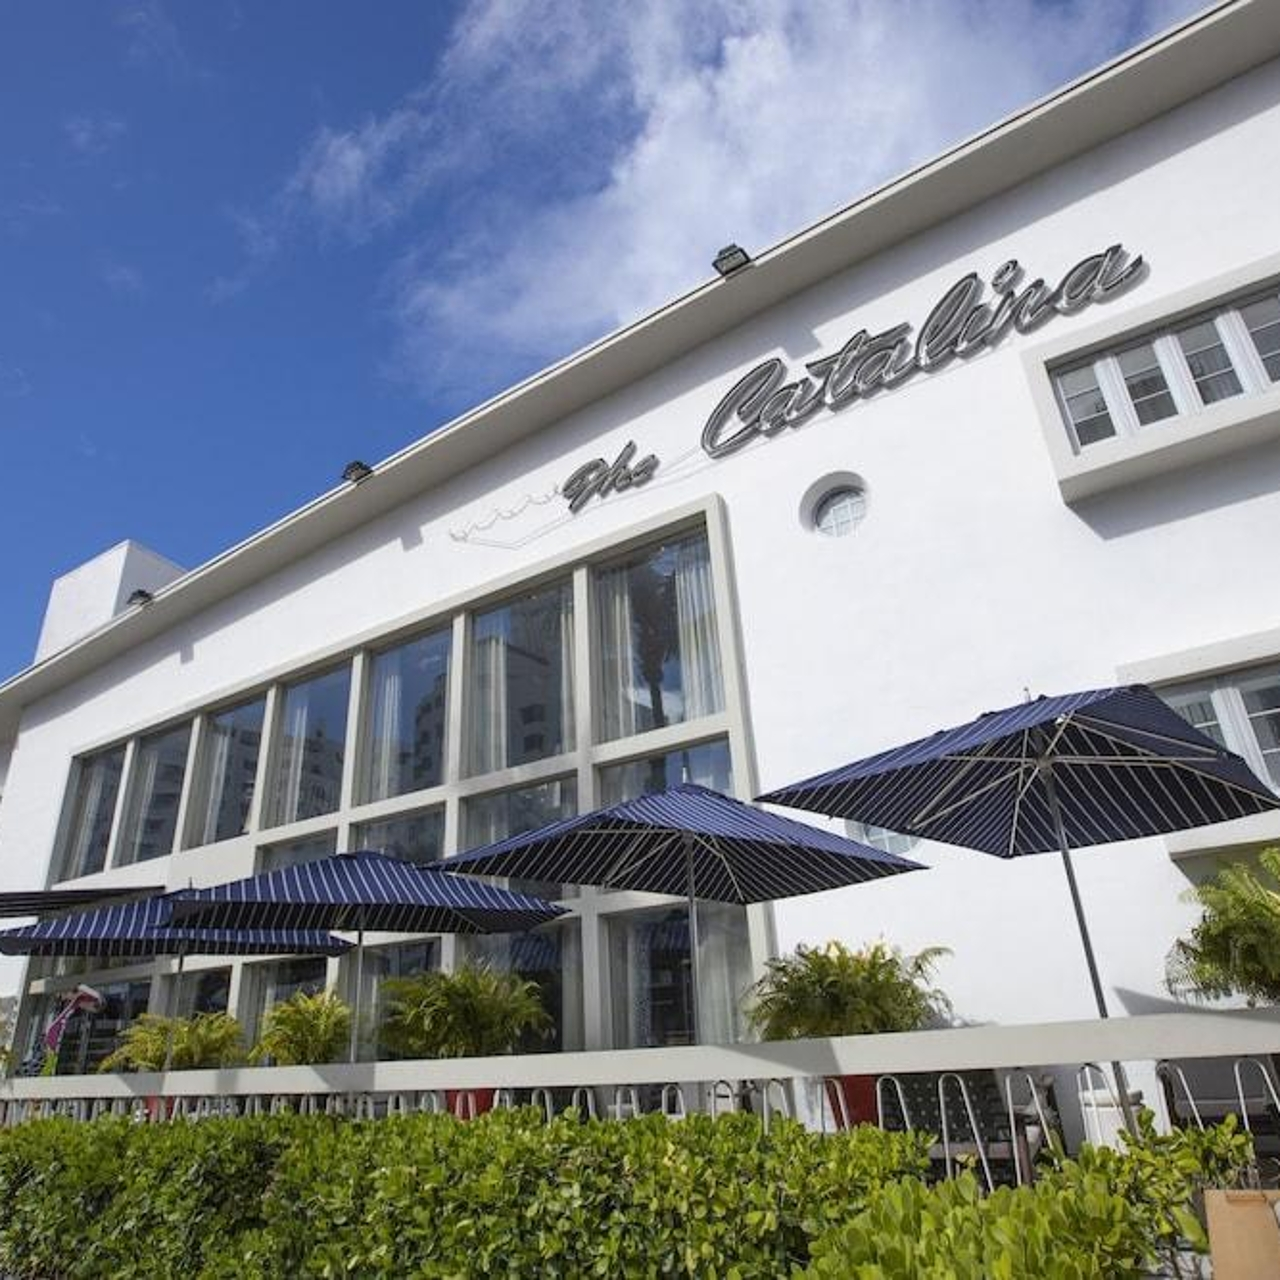 A South Beach Group Hotel Catalina Hotel Beach Club Miami Beach Florida At Hrs With Free Services